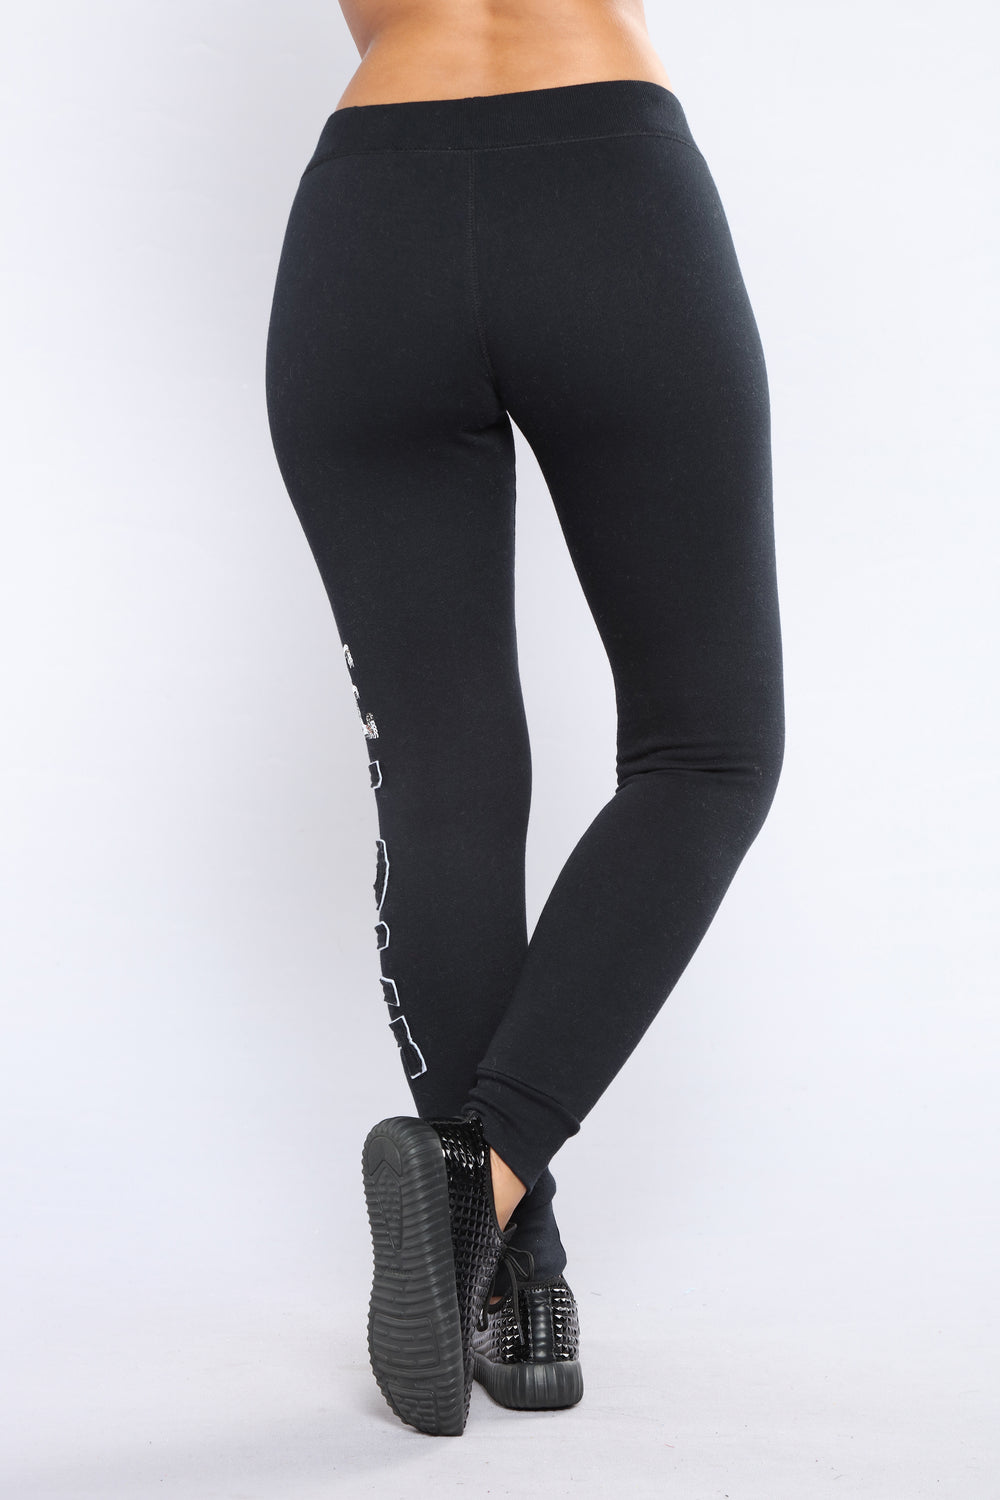 Be My Lover Lounge Joggers - Black